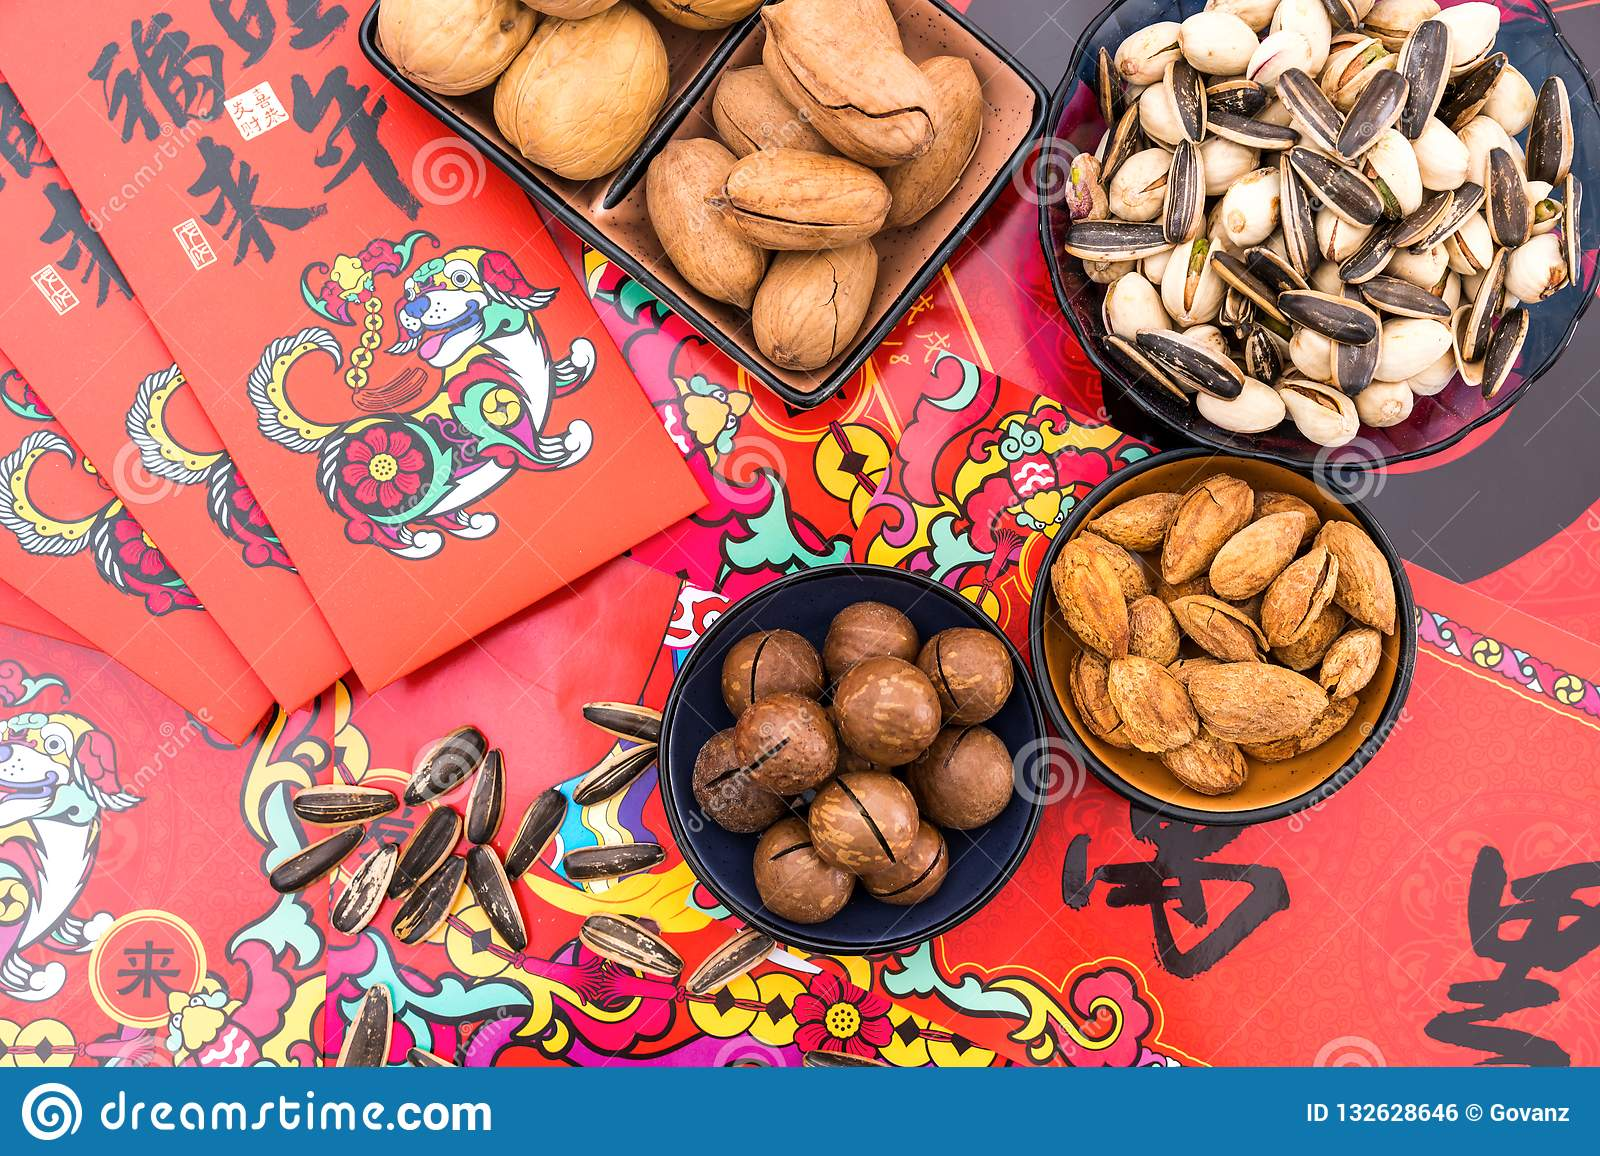 Nuts in the Background of Red Couplet in Spring Festival